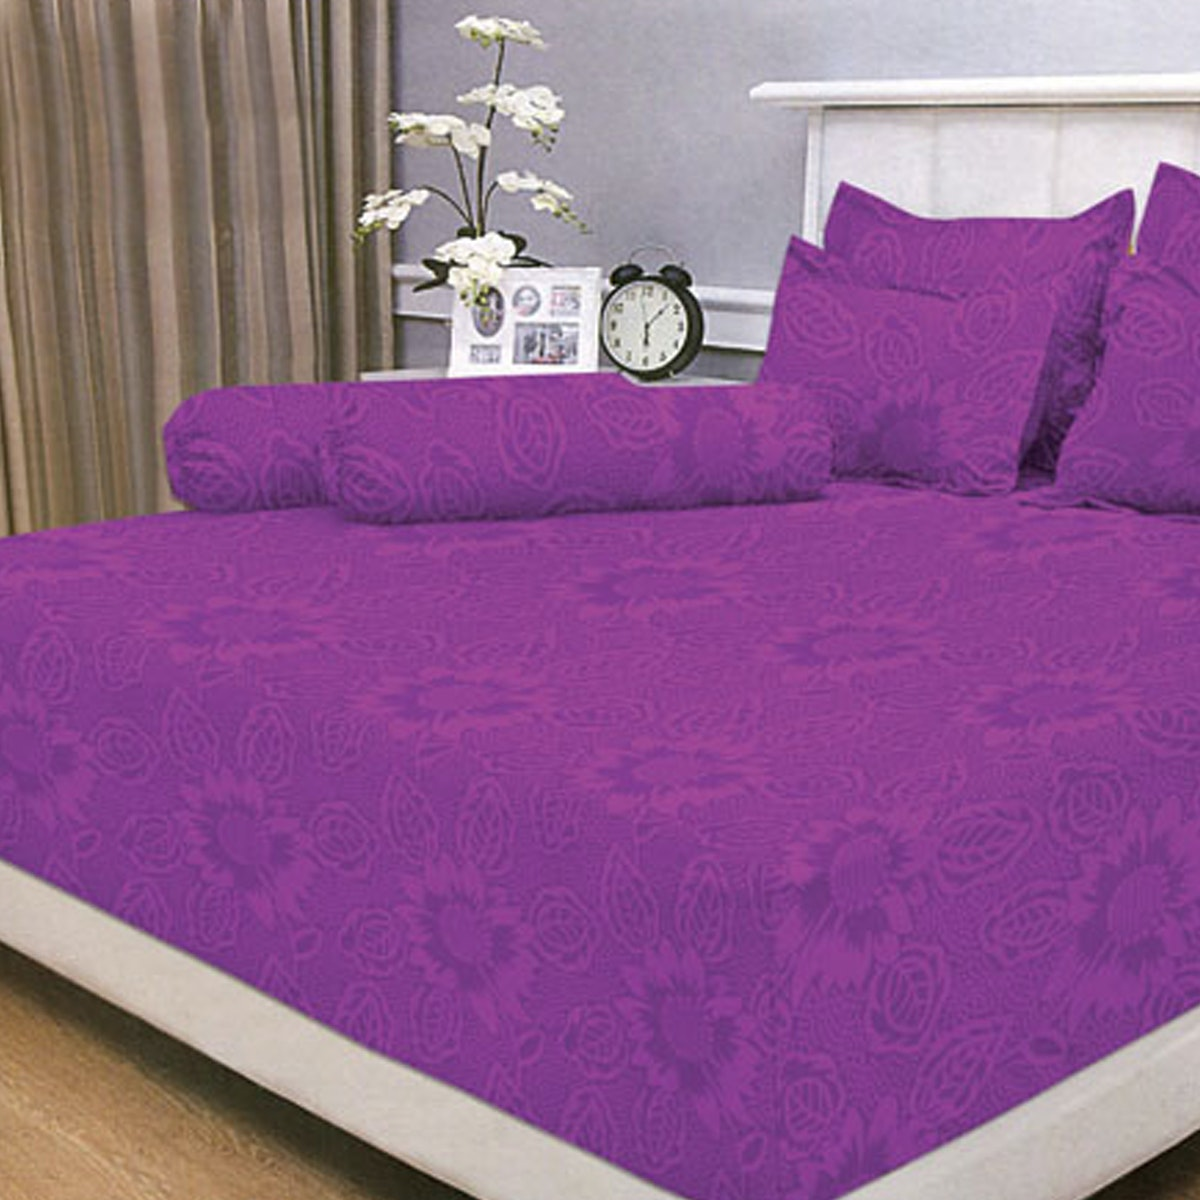 Vallery Quincy Set Sprei Jacquard - Light Purple 120x200x30cm